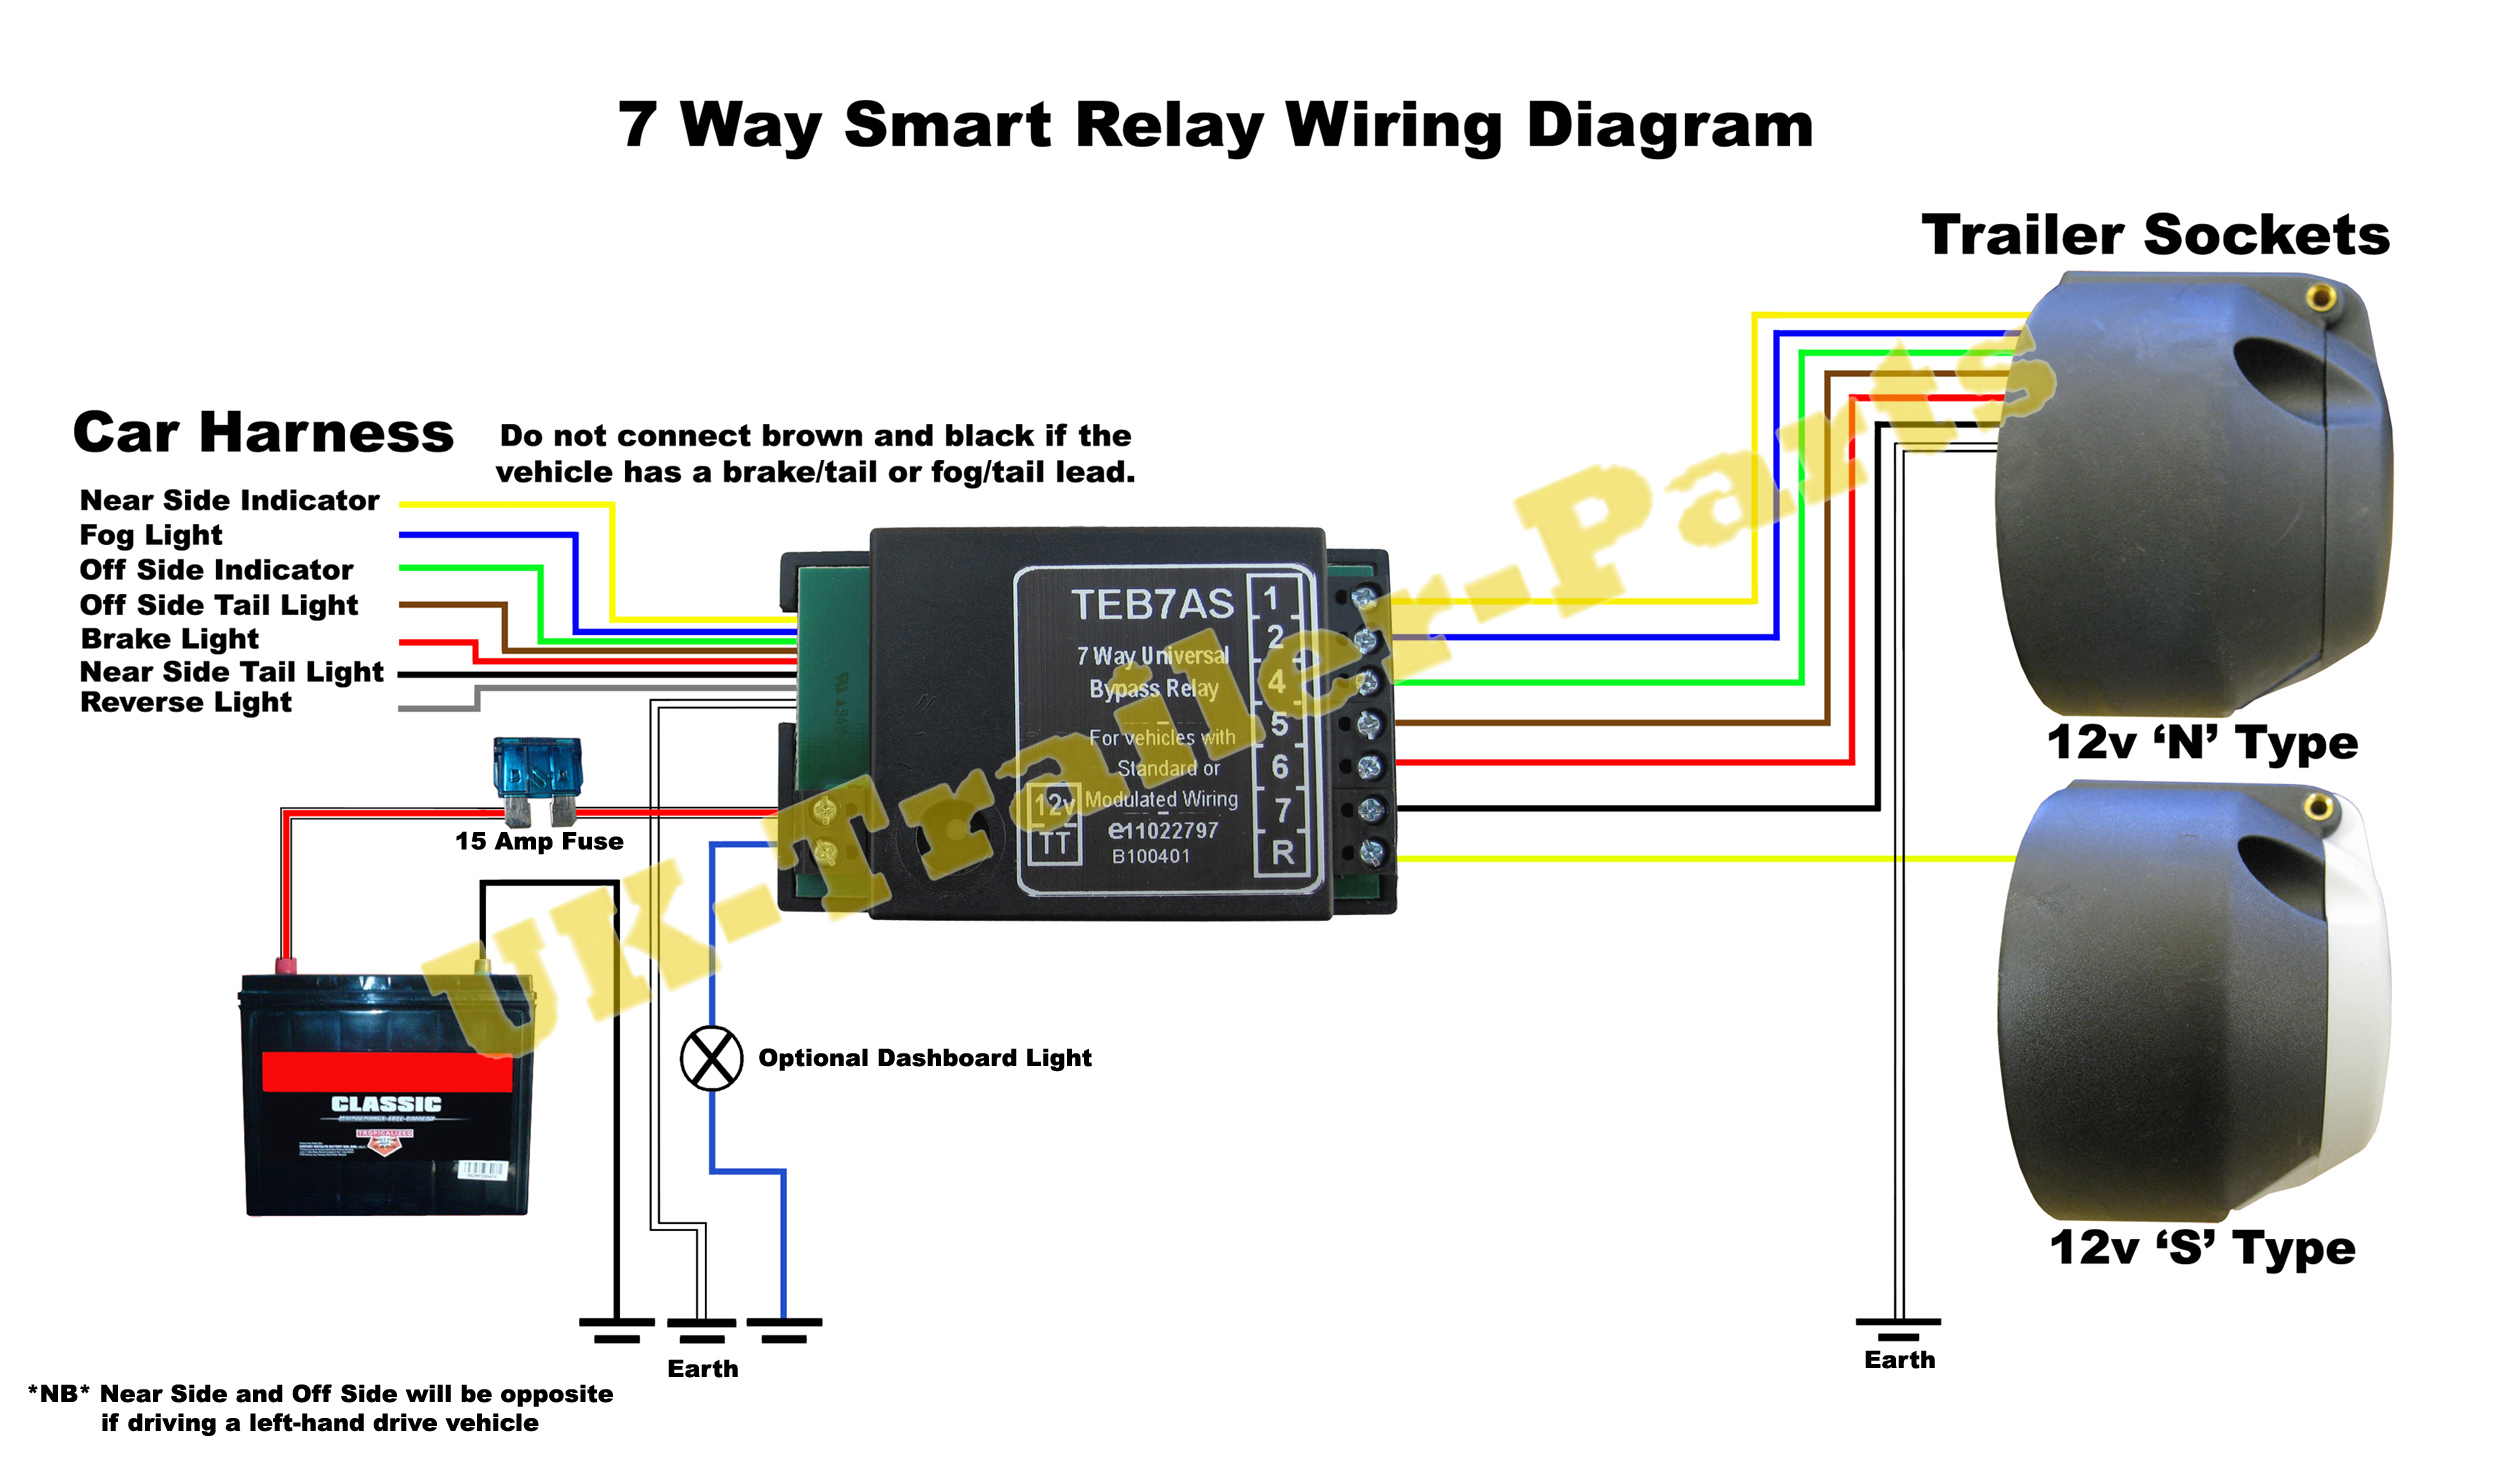 7 way universal bypass relay wiring diagram uk trailer parts rh uk trailer parts co uk